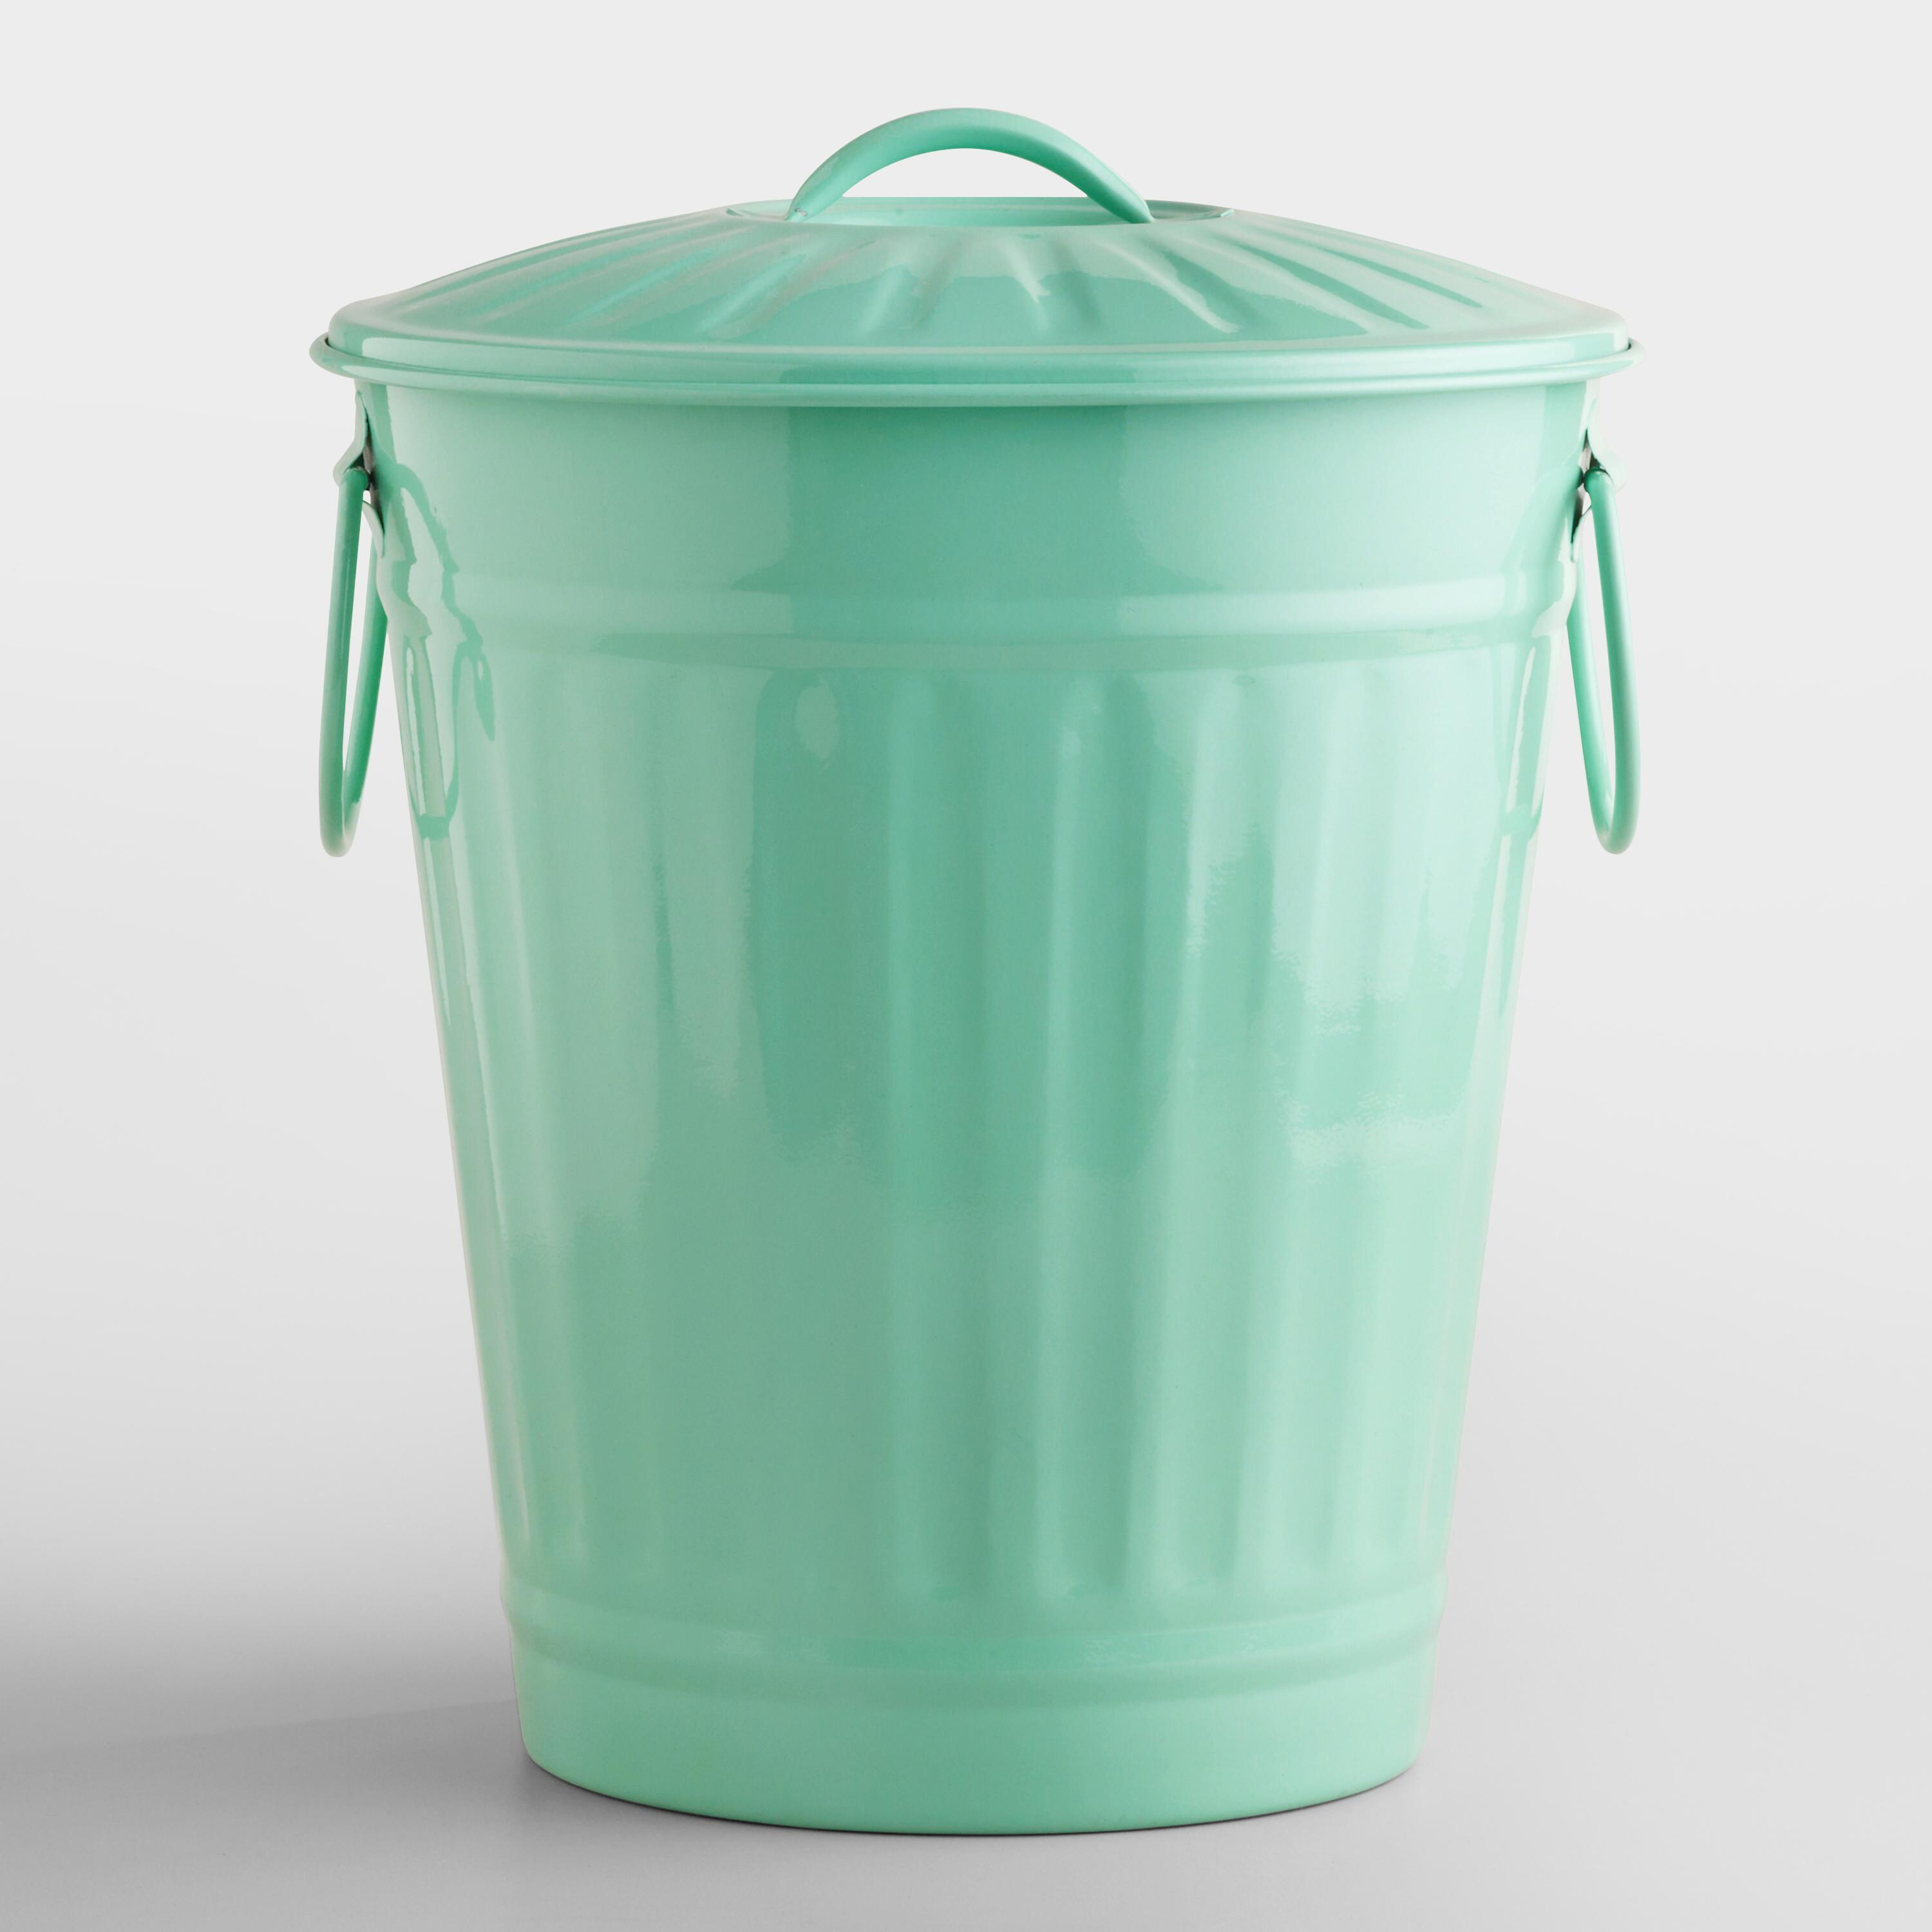 Mint Retro Galvanized Trash Can: Blue - Metal by World Market ...